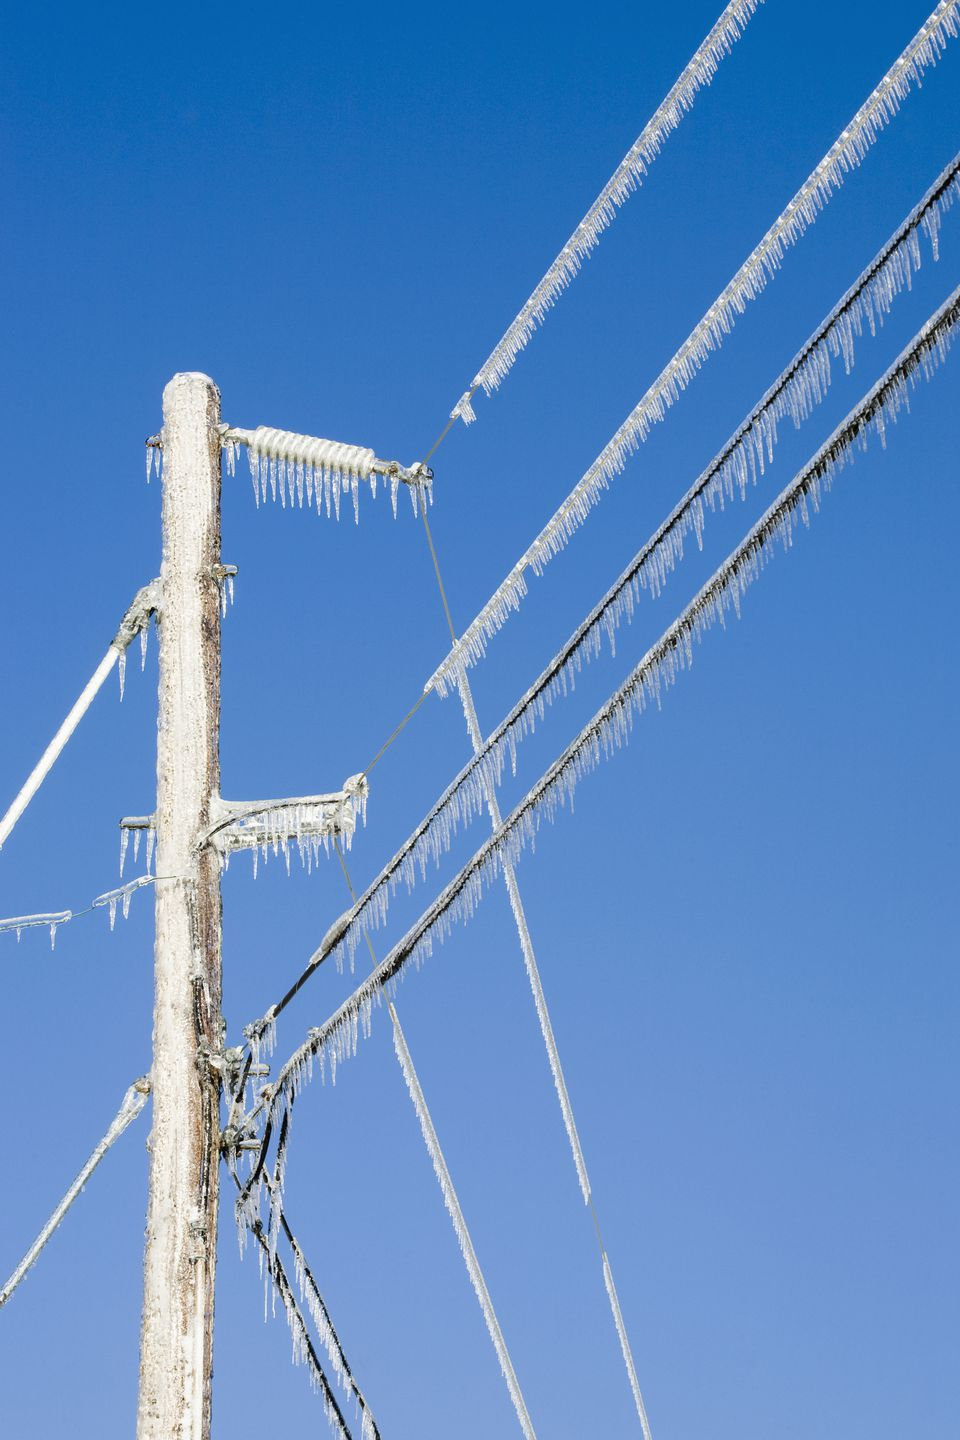 Power lines in ice